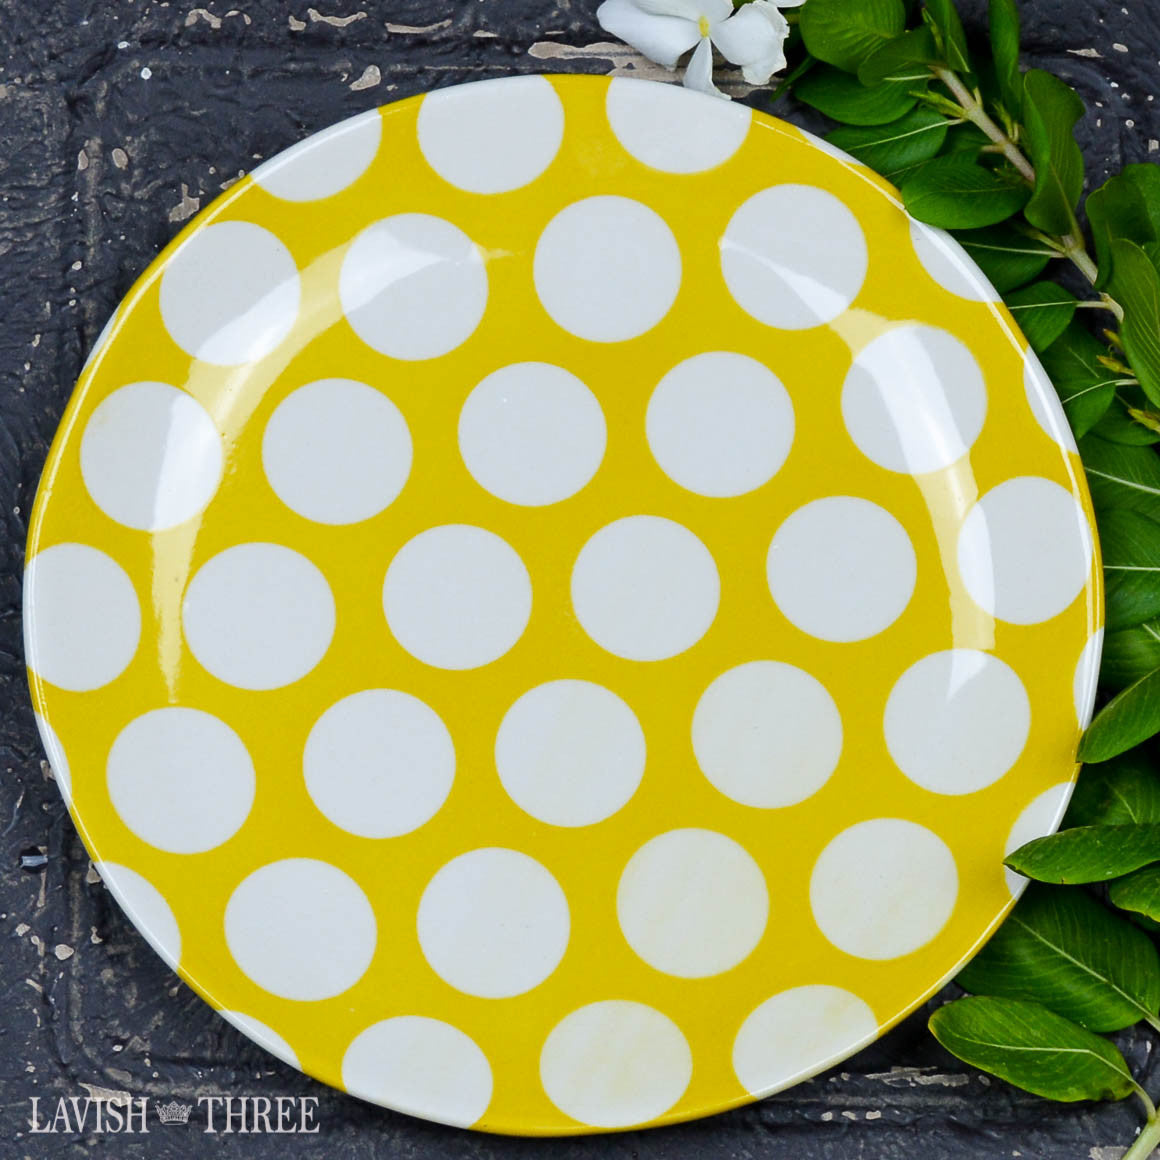 Colorful country style dessert, salad, side eclectic plates dishes in polka dot